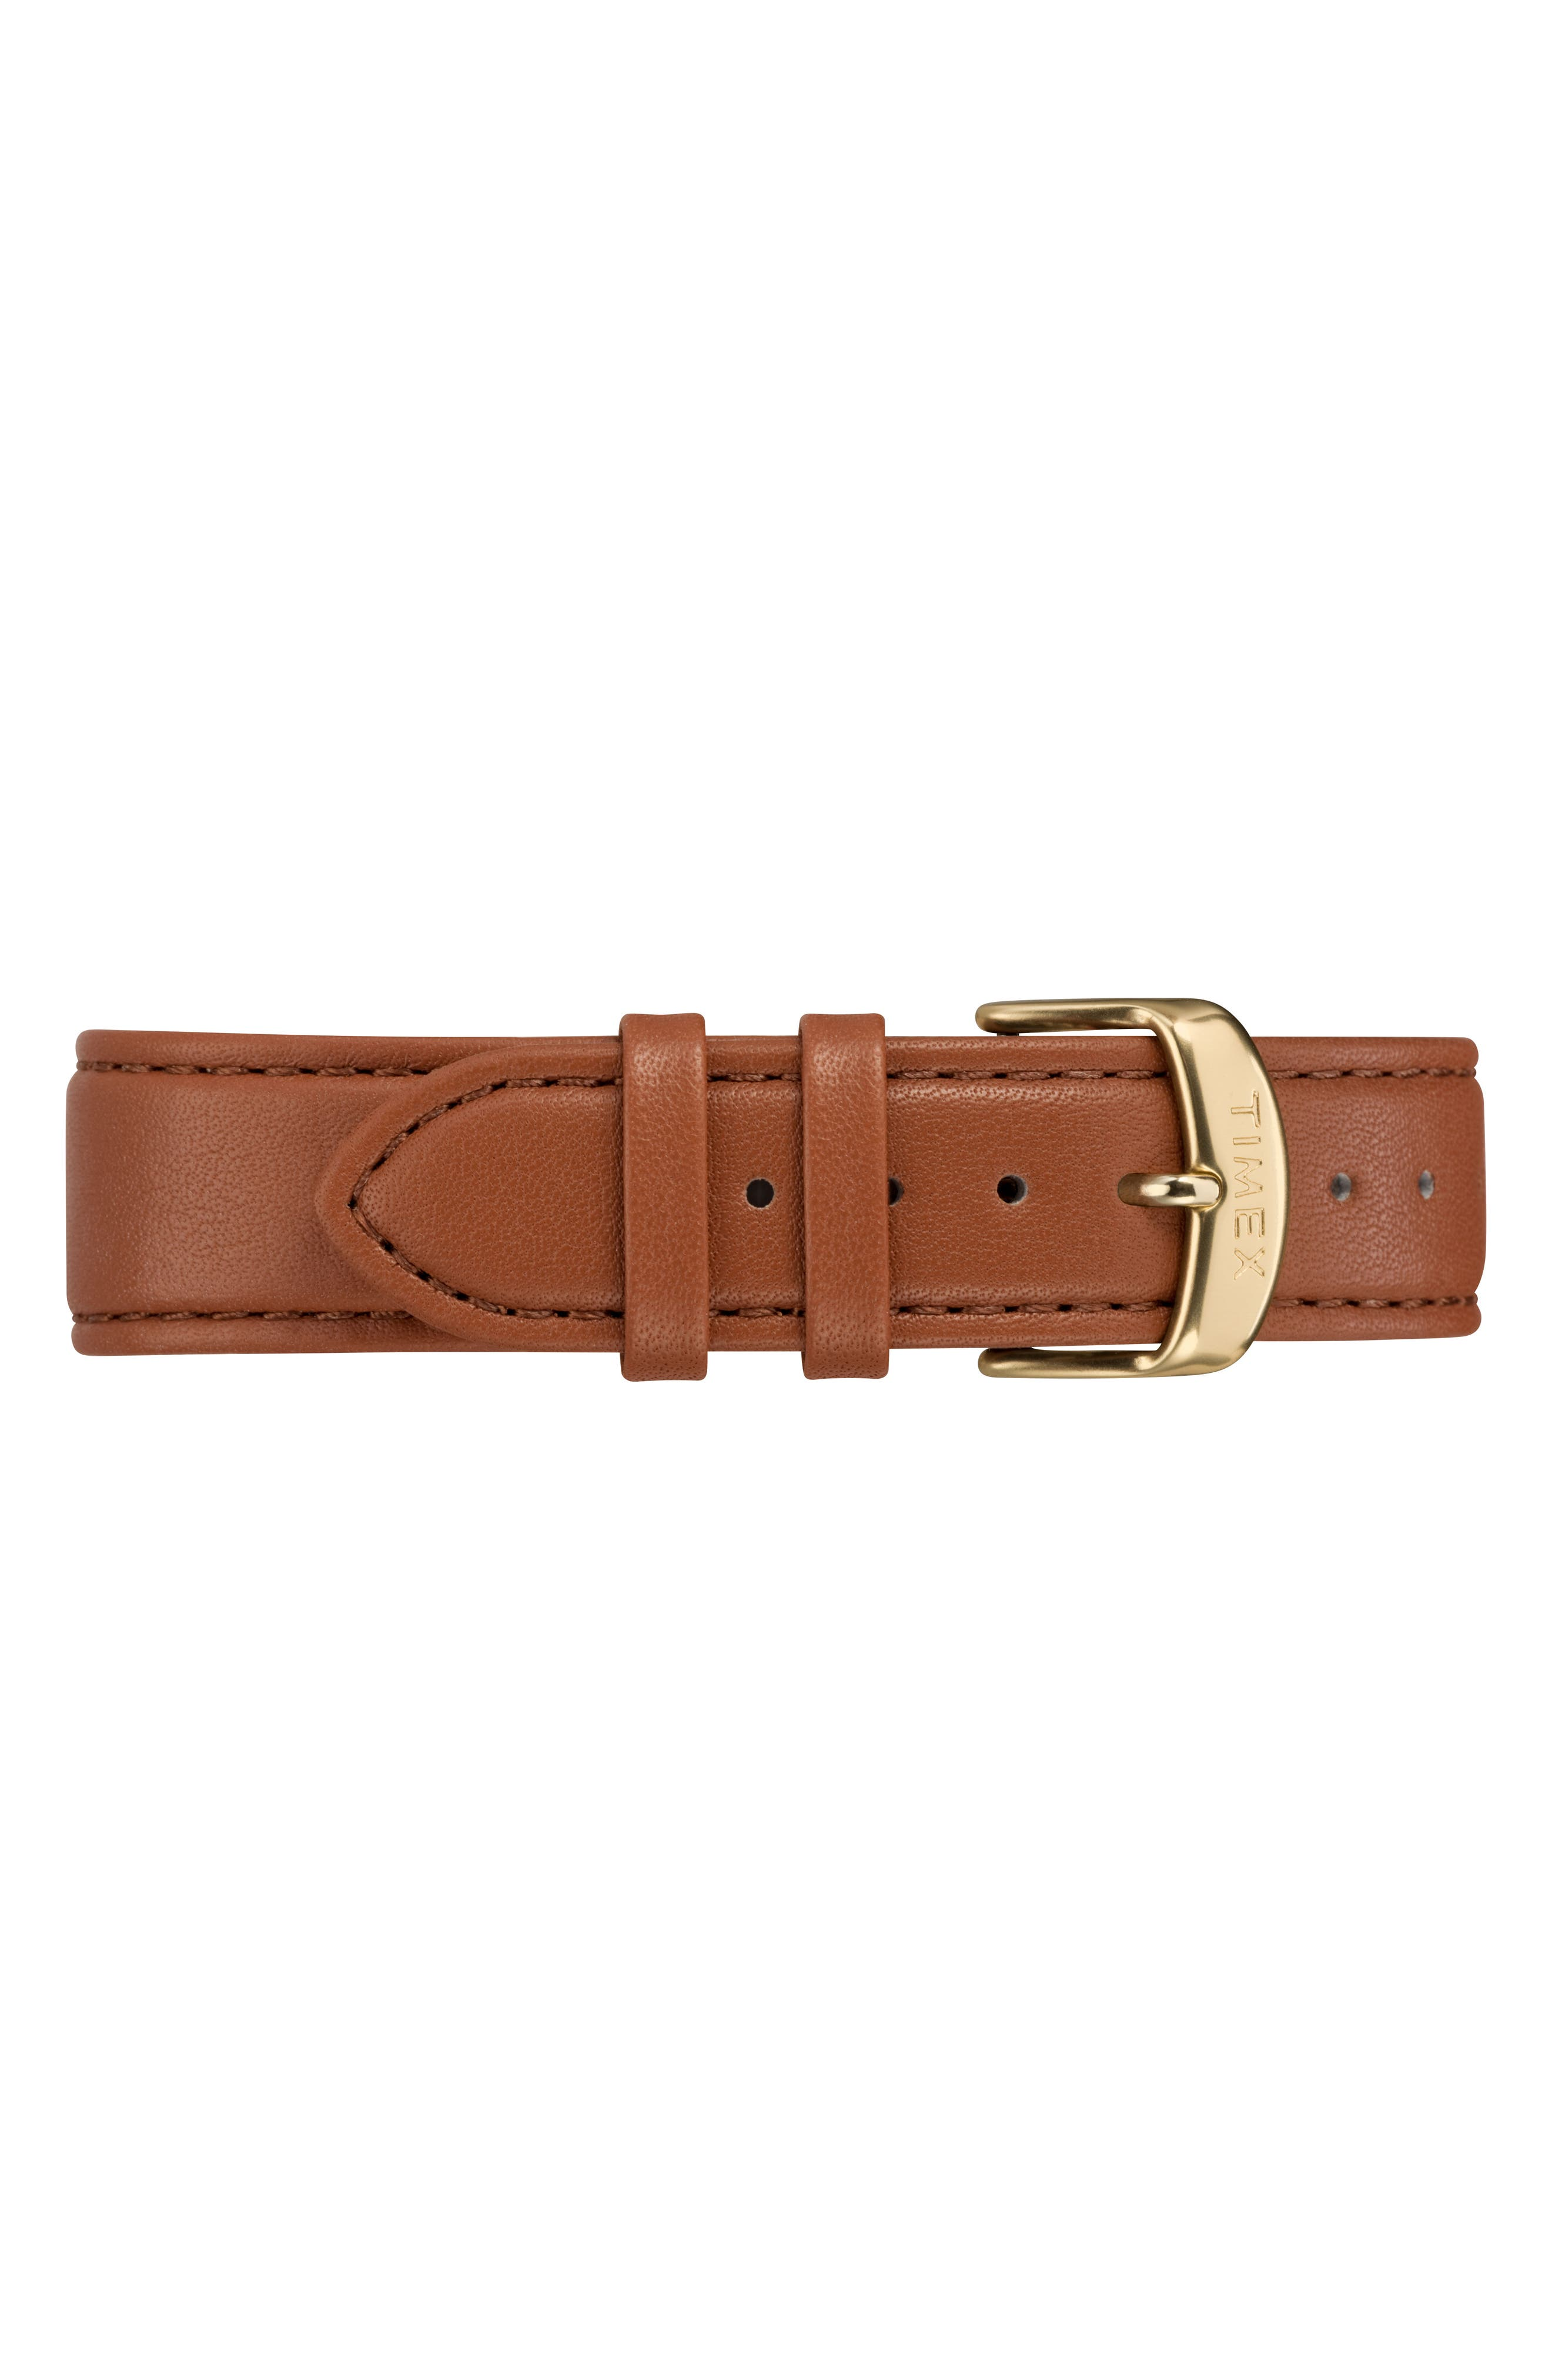 Fairfield Leather Strap Watch, 41mm,                             Alternate thumbnail 3, color,                             TAN/ CREAM/ GOLD